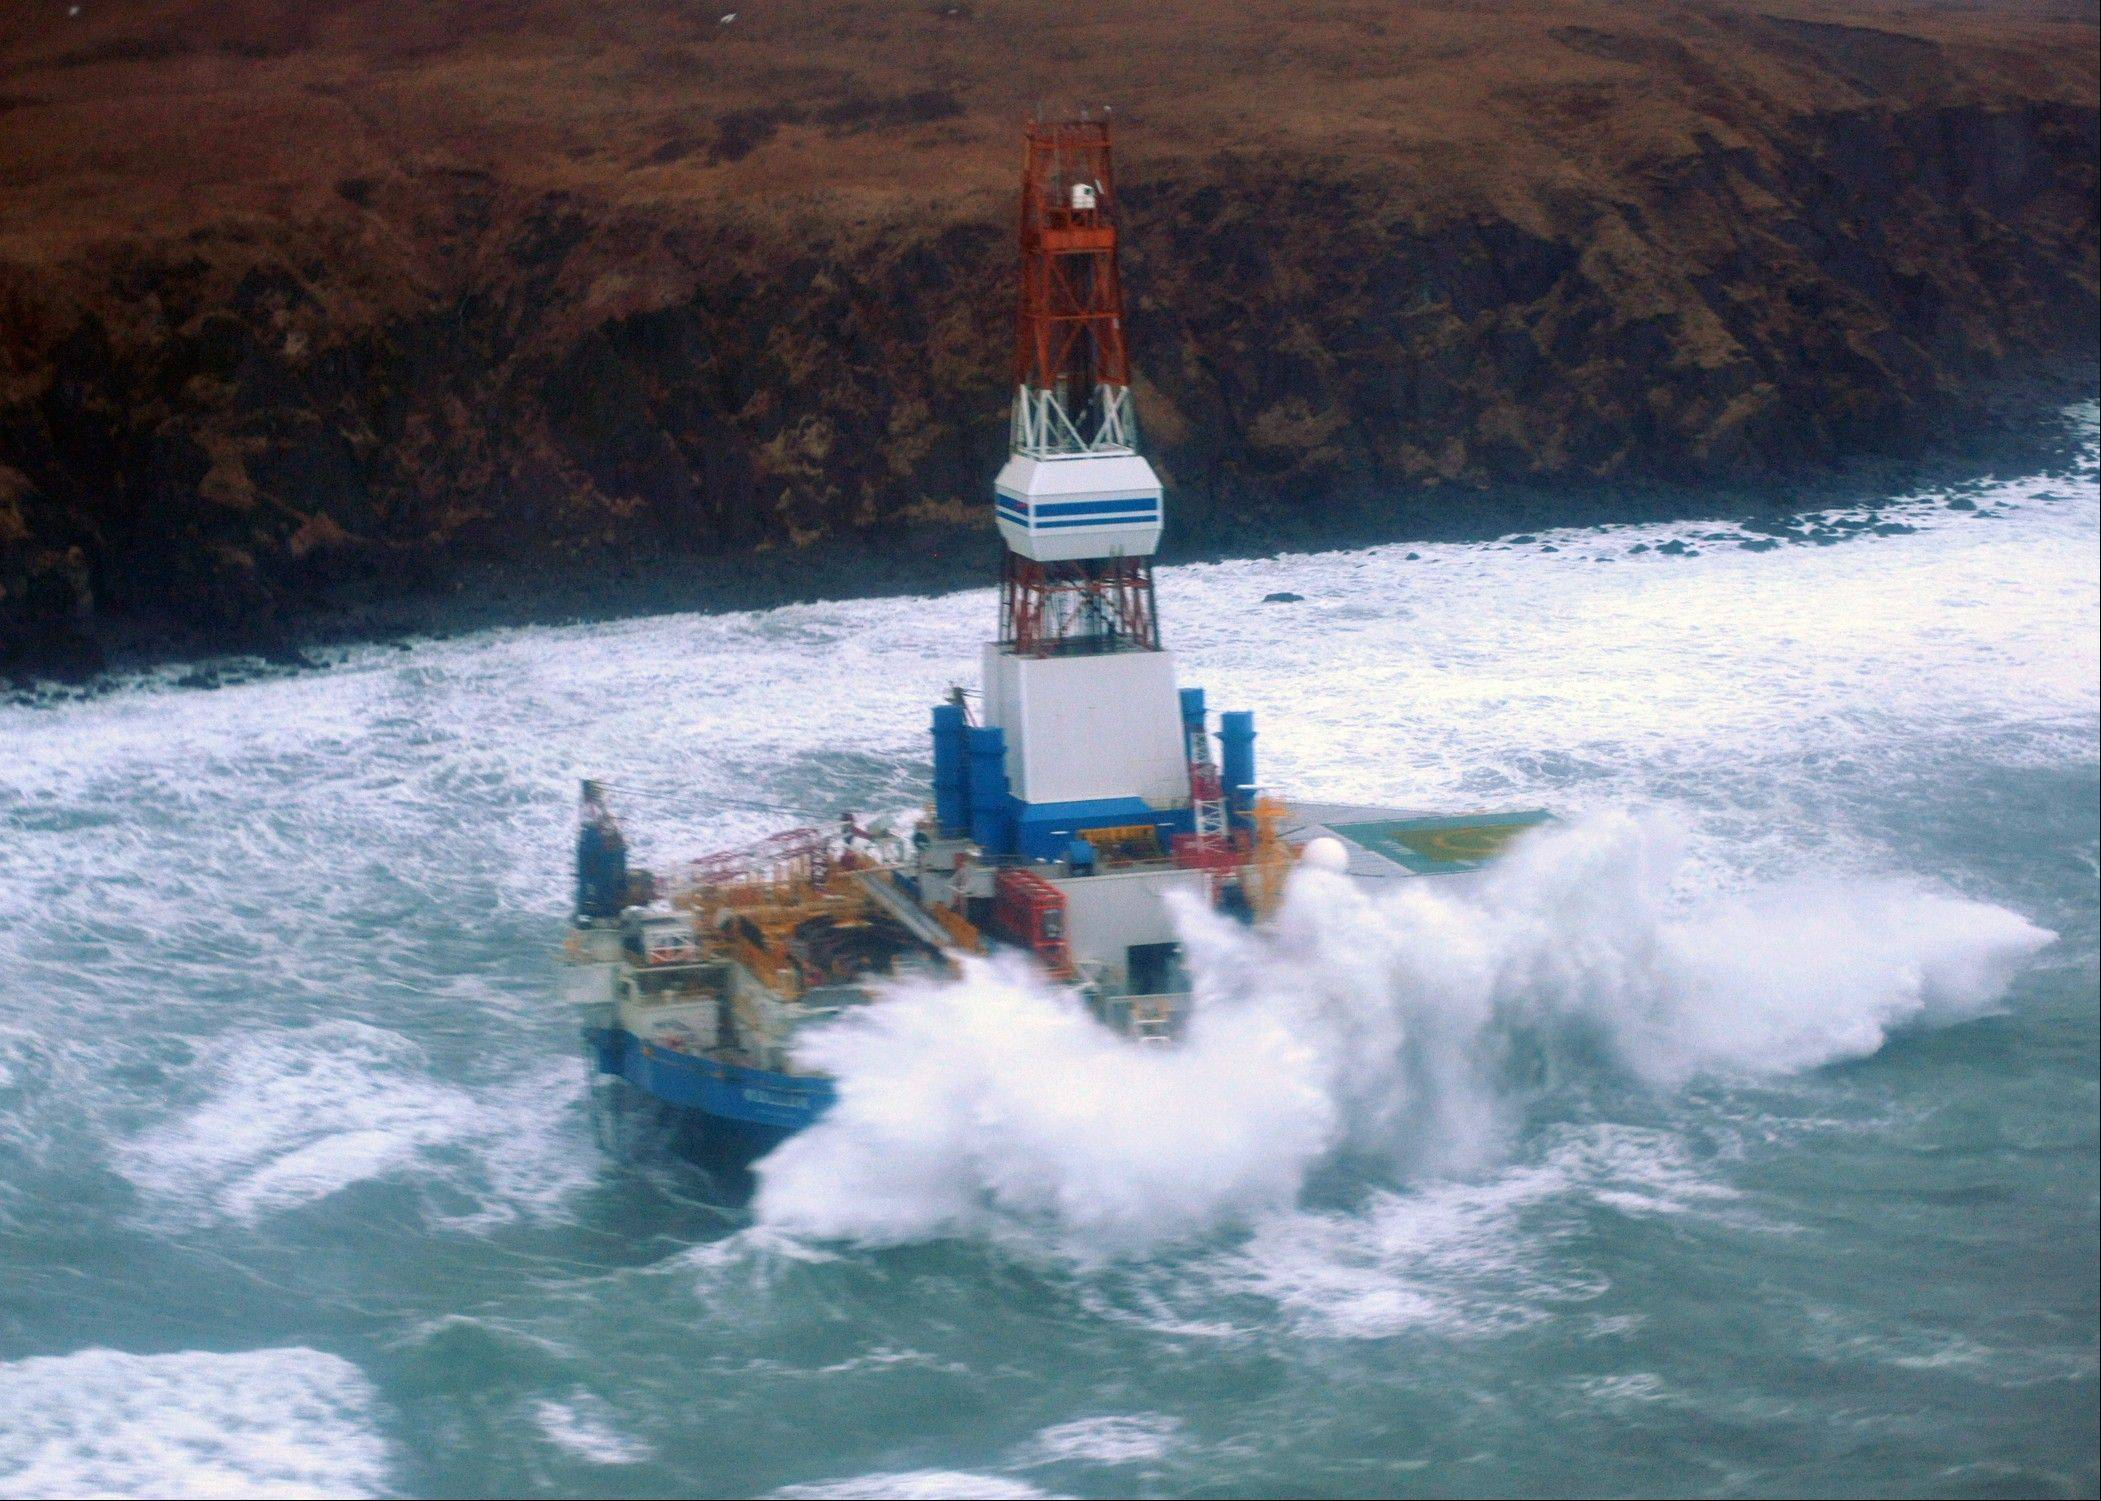 The Royal Dutch Shell drilling rig Kulluk aground off a small island near Kodiak Island.